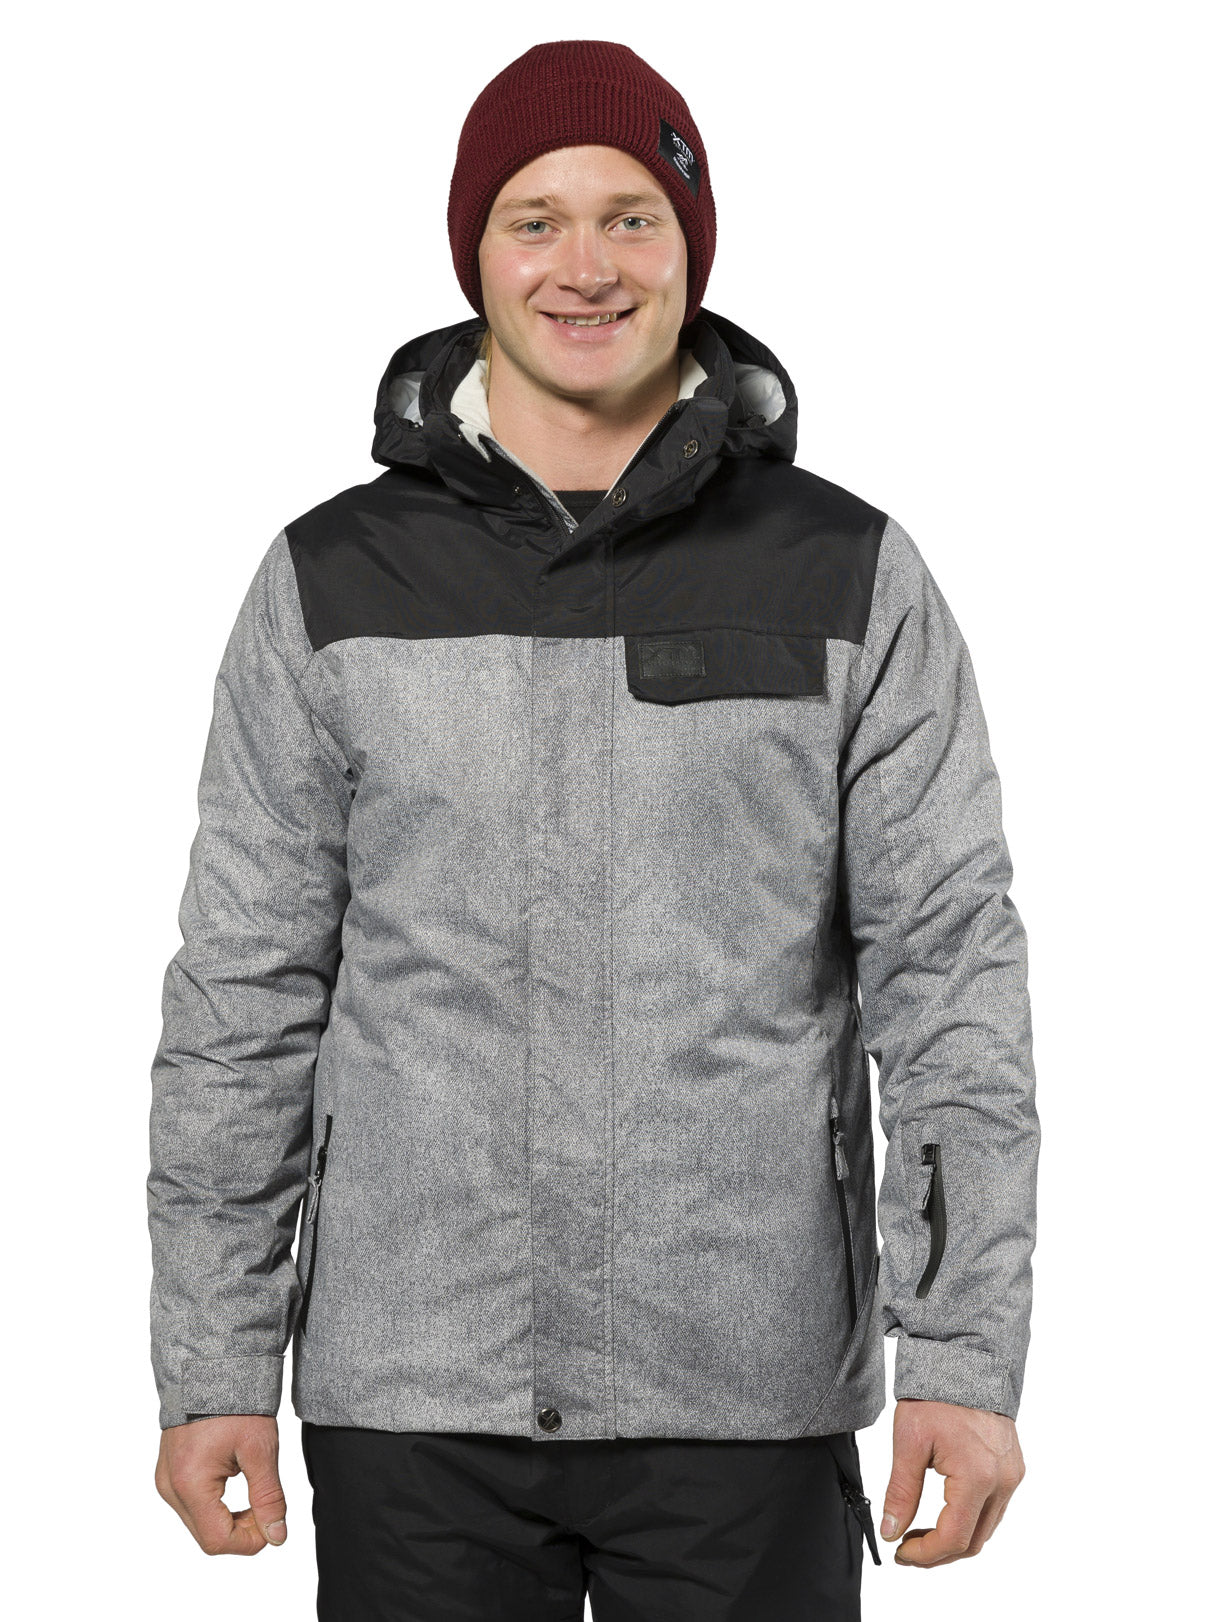 XTM Axel Jacket | Grey Denim- Shop Skis and snow gear online nz - snowscene